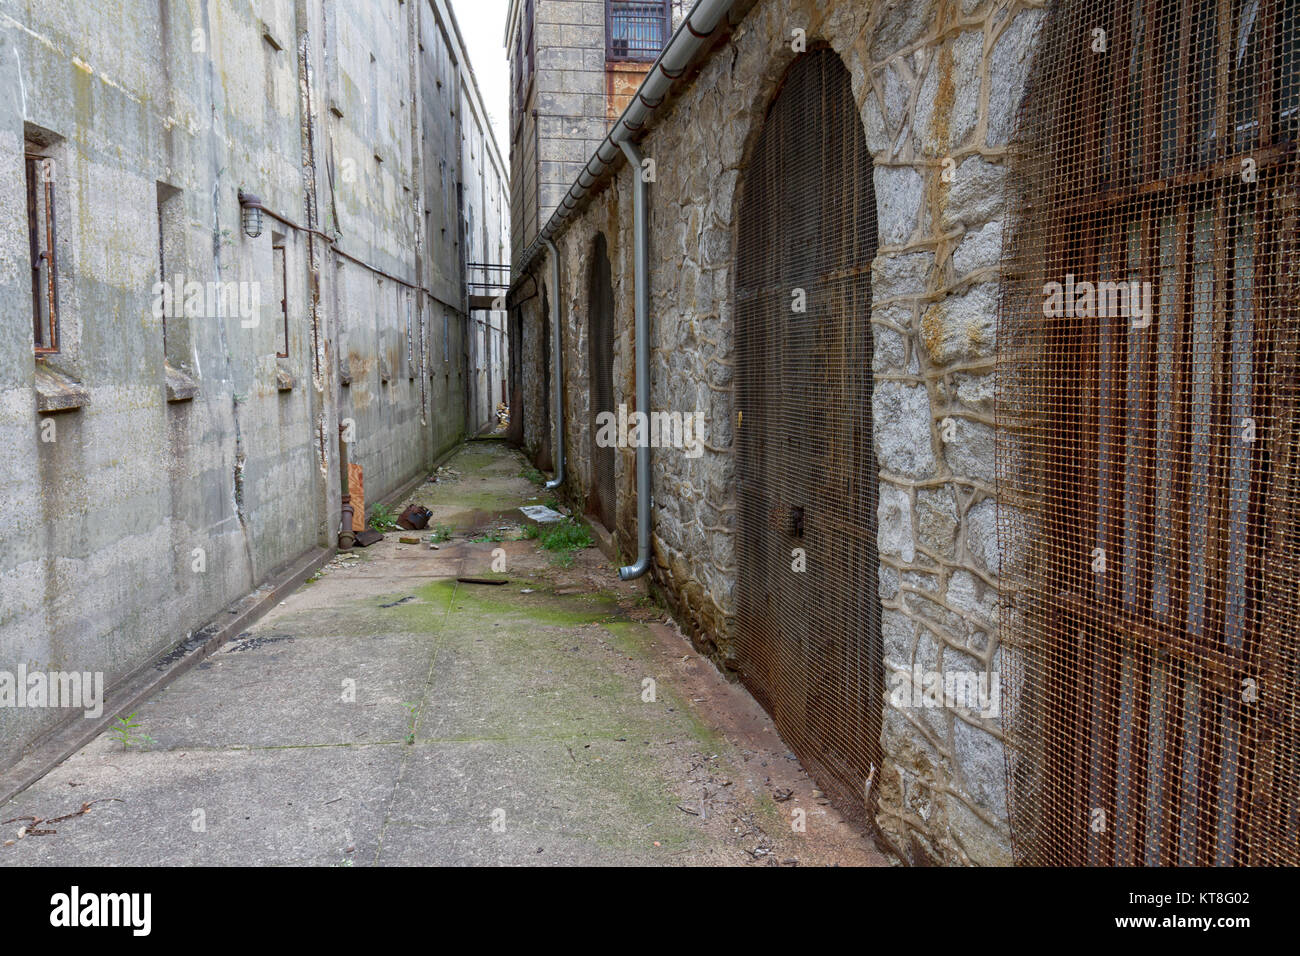 Solitary Confinement cells inside the Eastern State Penitentiary Historic Site, Philadelphia, Pennsylvania, United - Stock Image